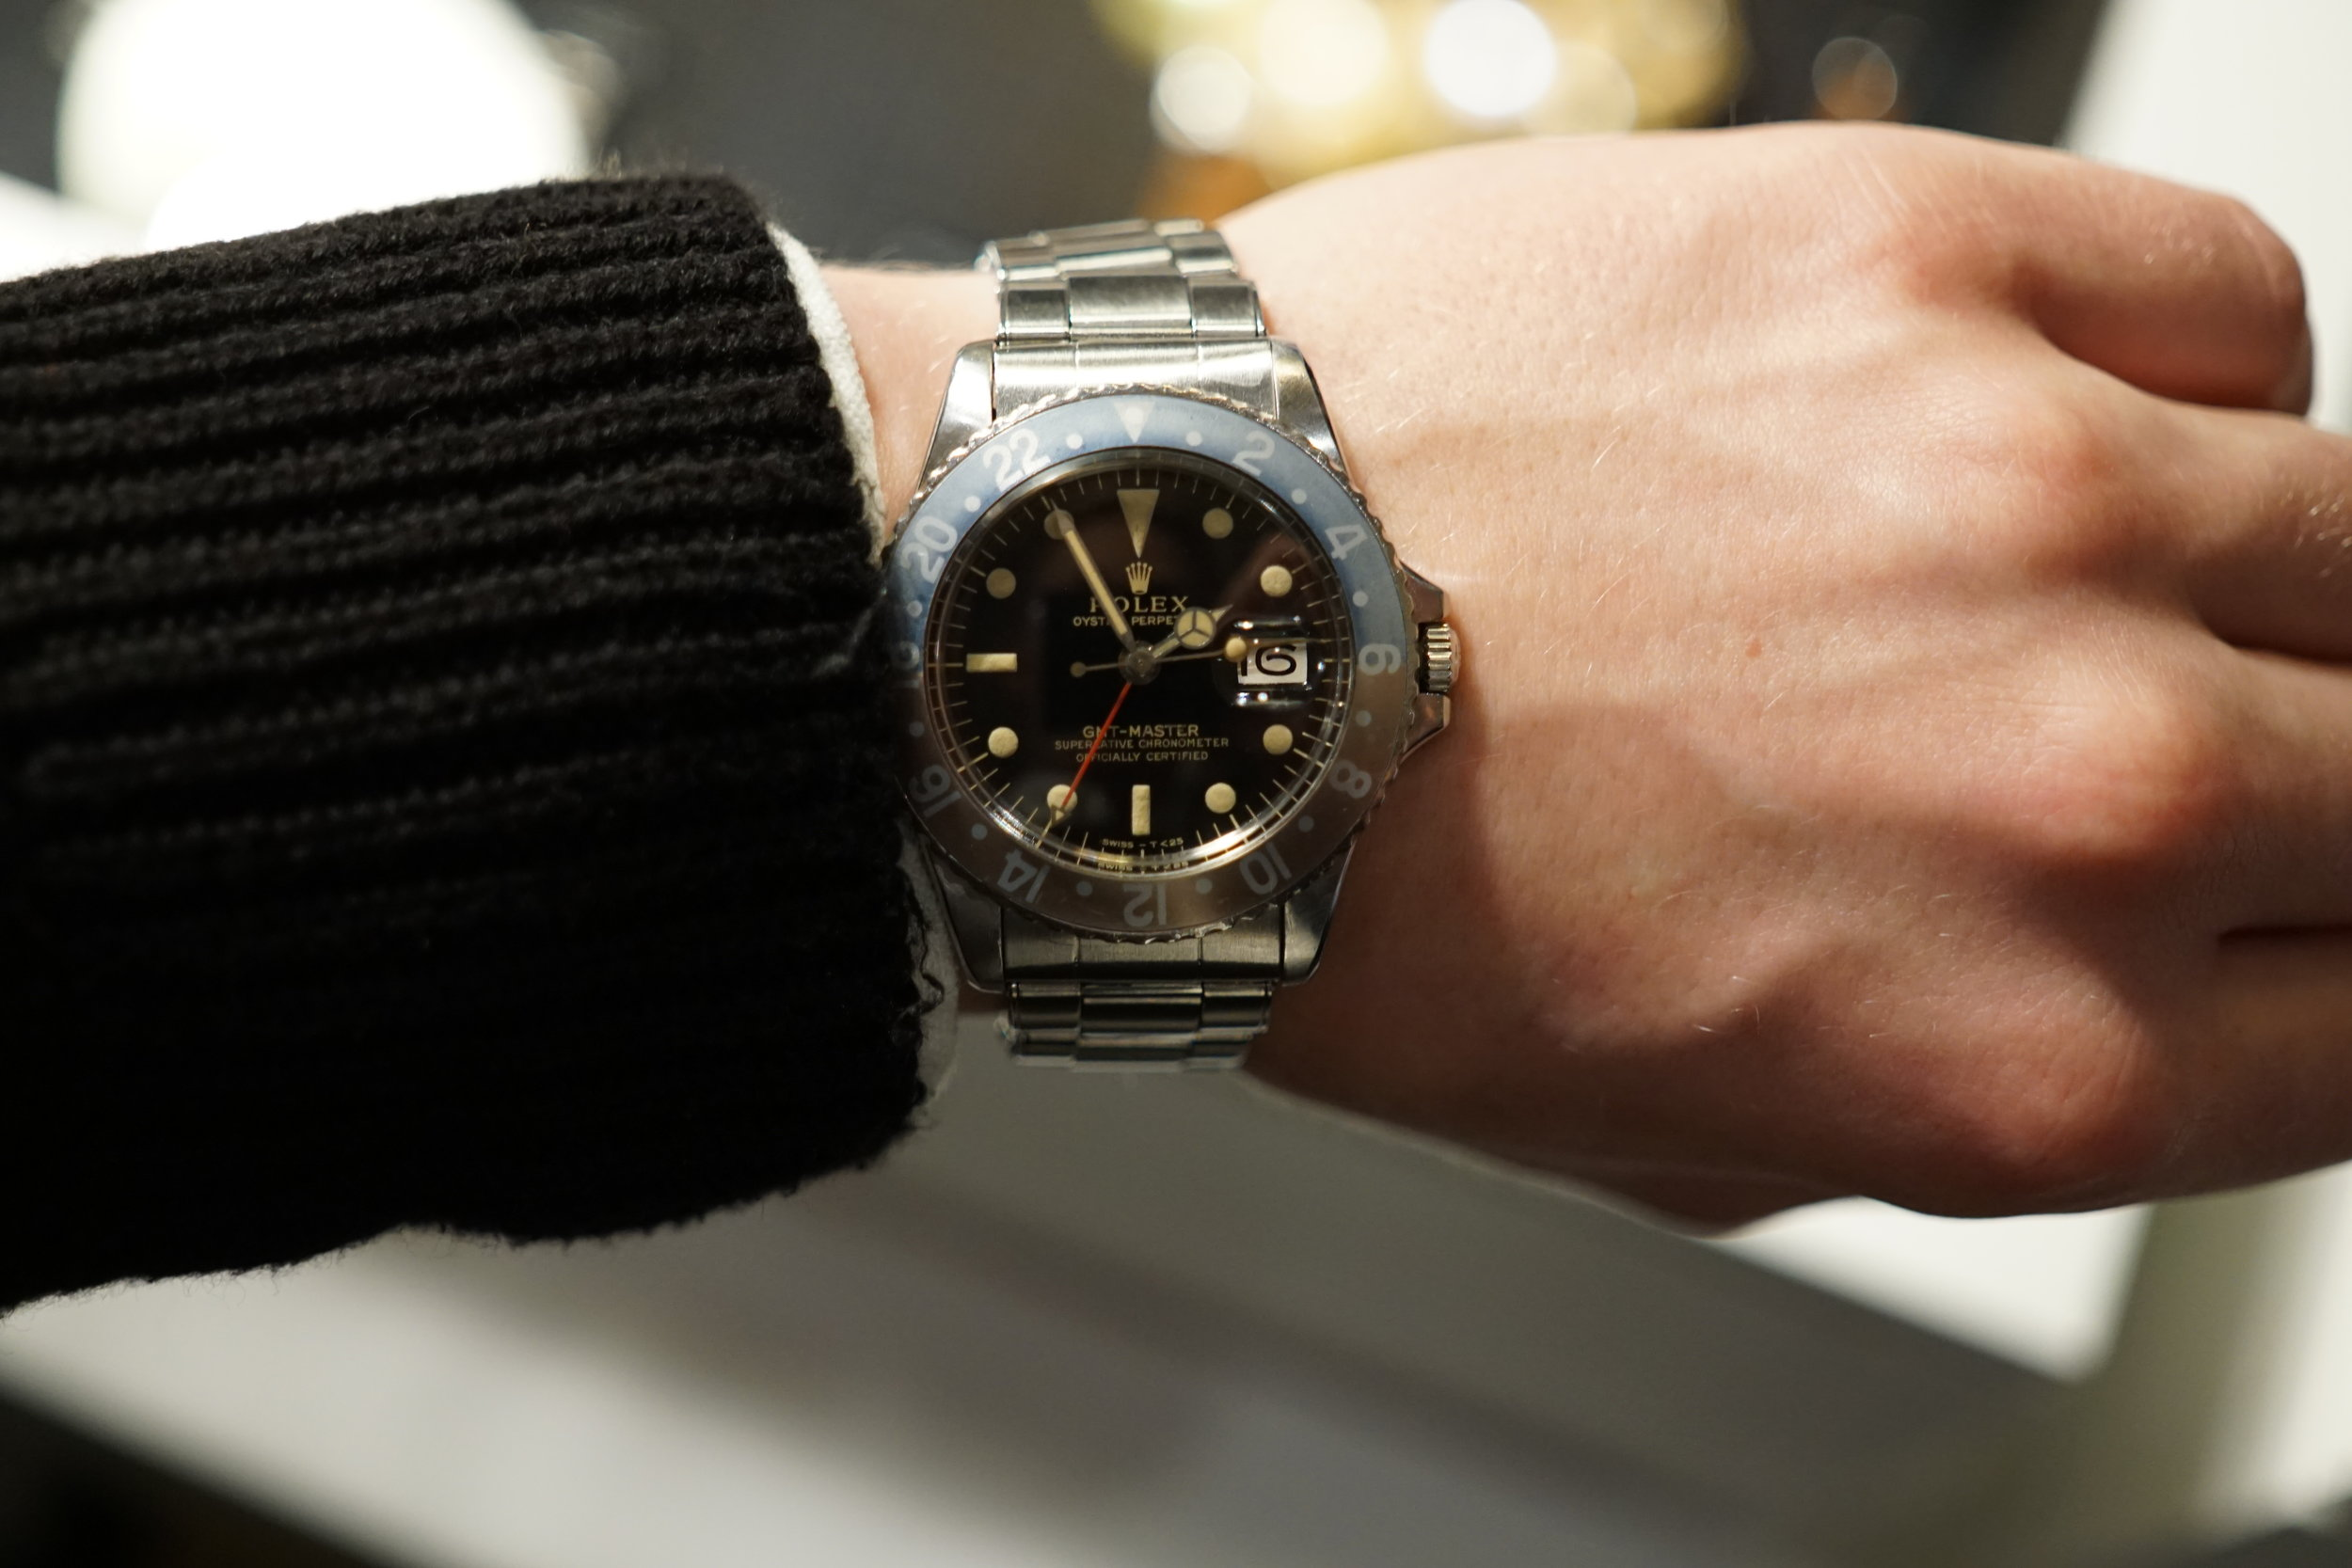 Any Rolex collector's wet dream - the GMT Master ref. 1675 in great condition with some beautiful patina.